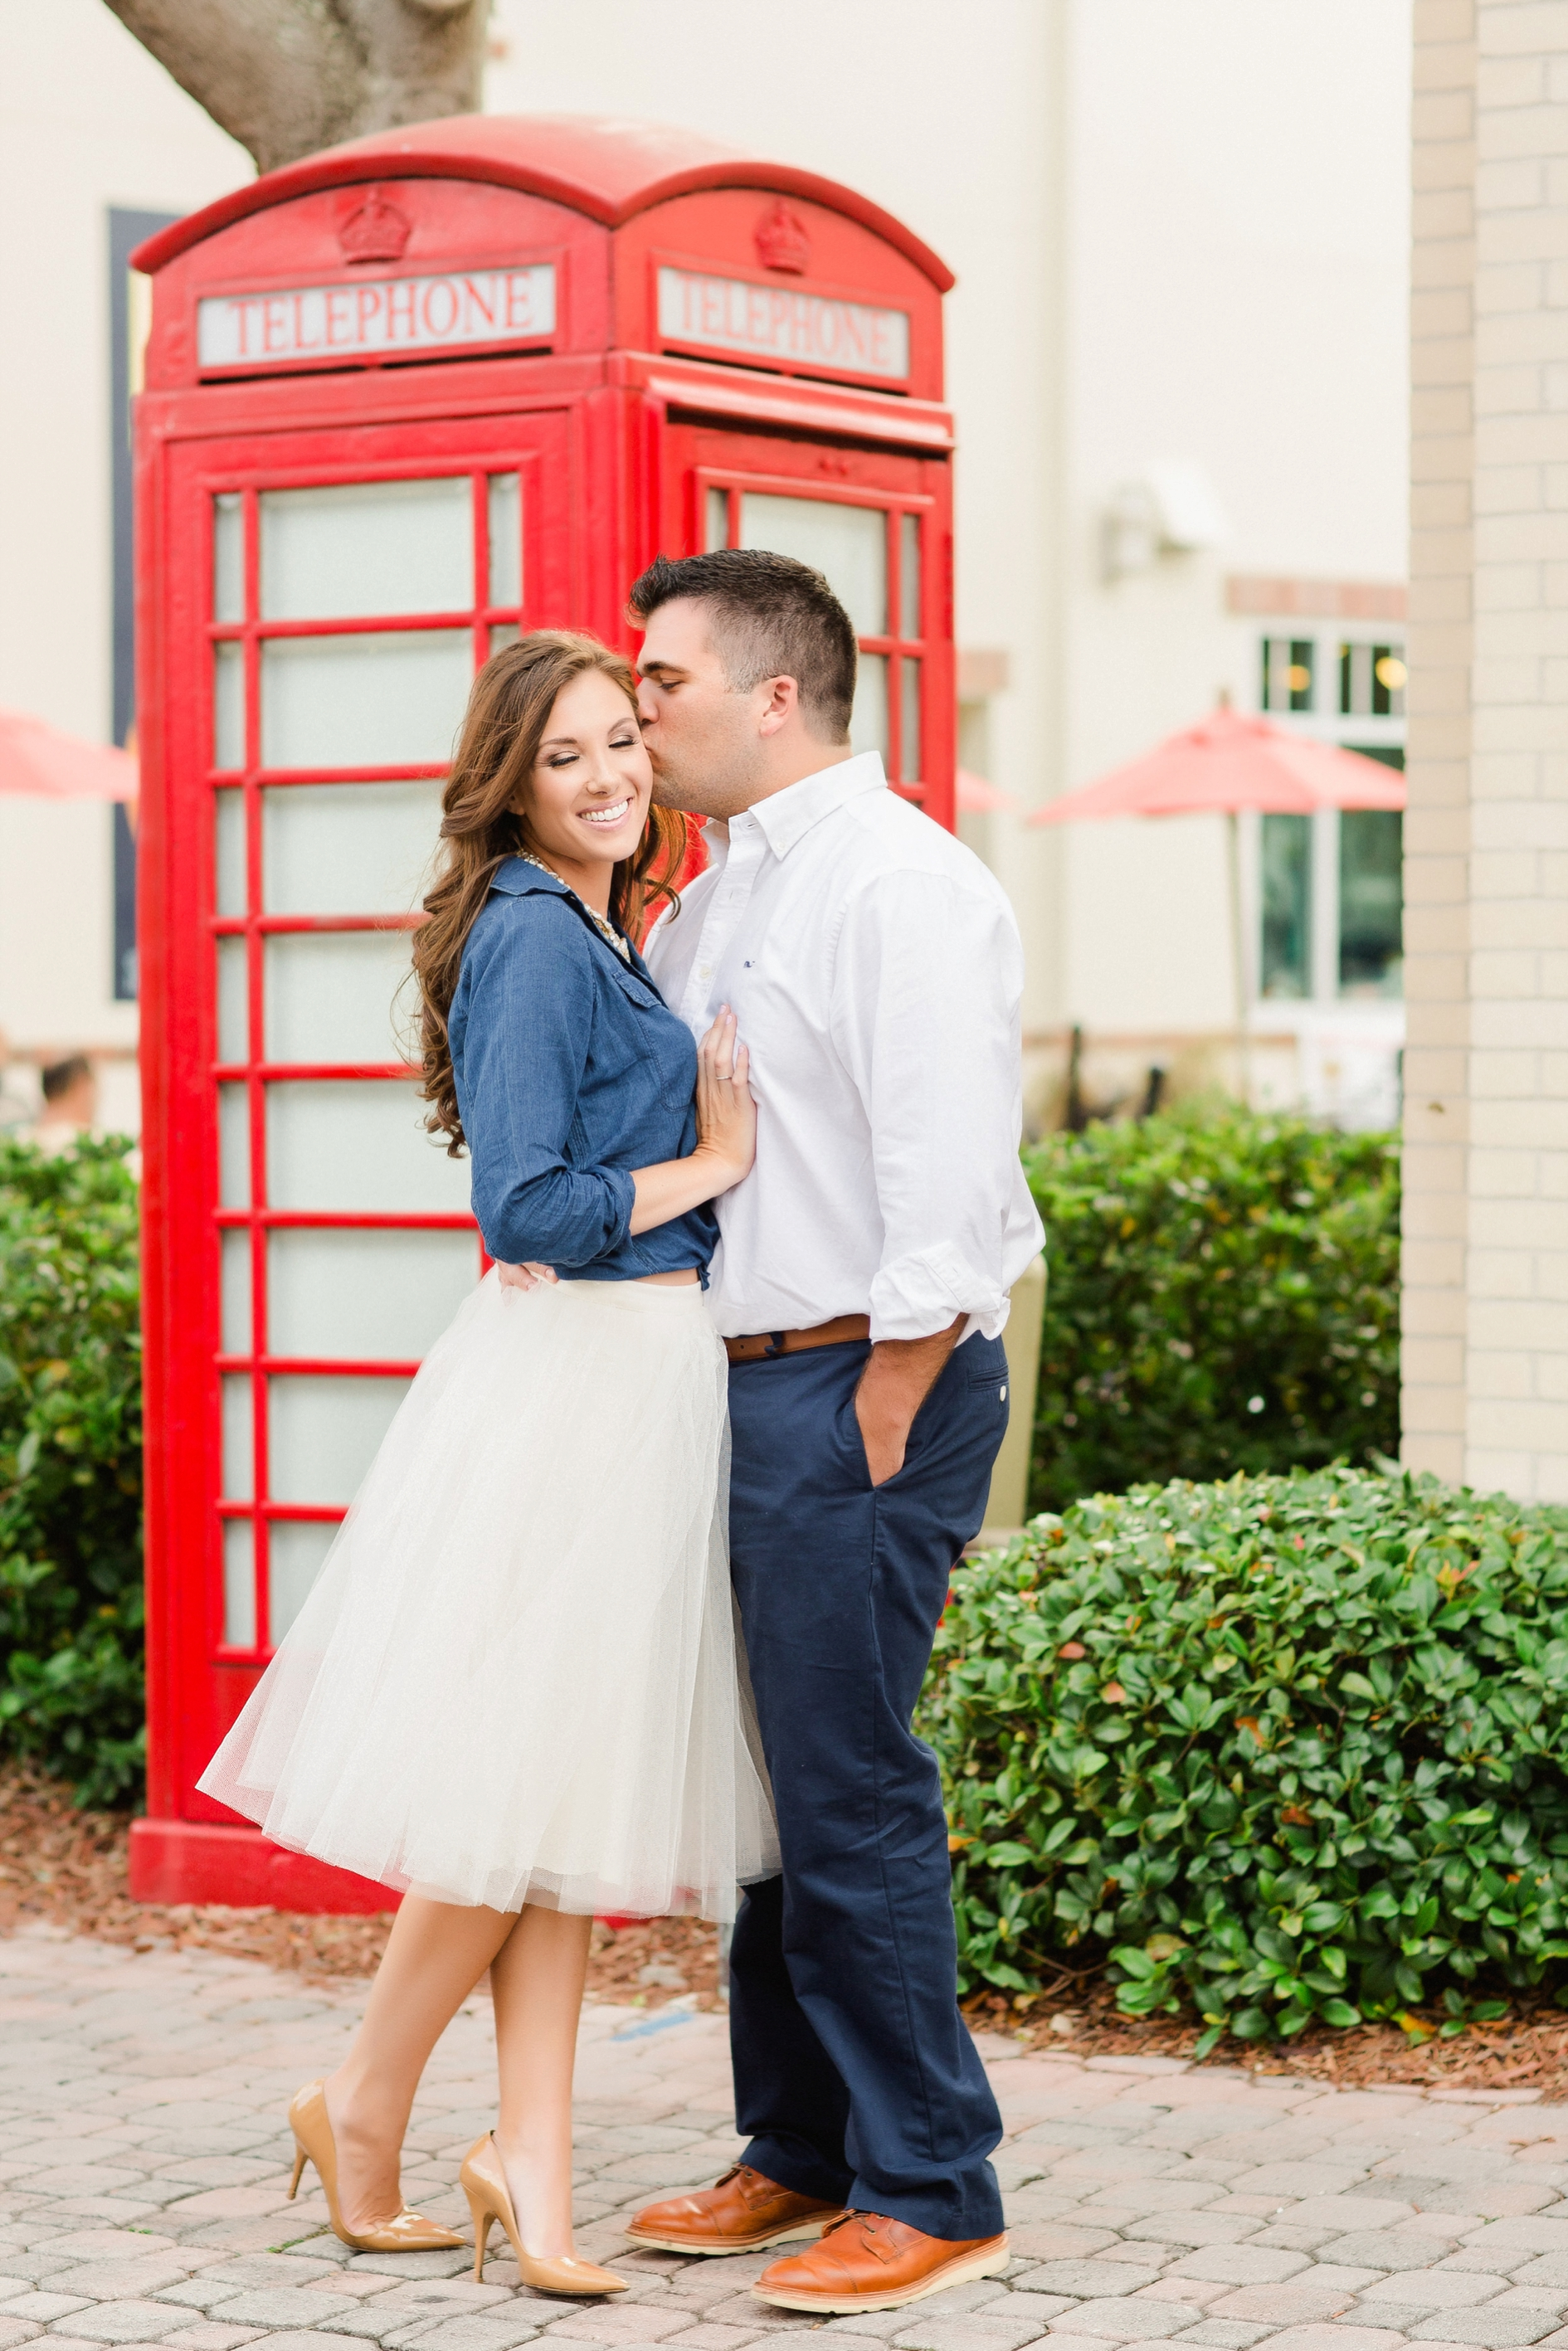 Tampa Engagement | © Ailyn La Torre Photography 2015